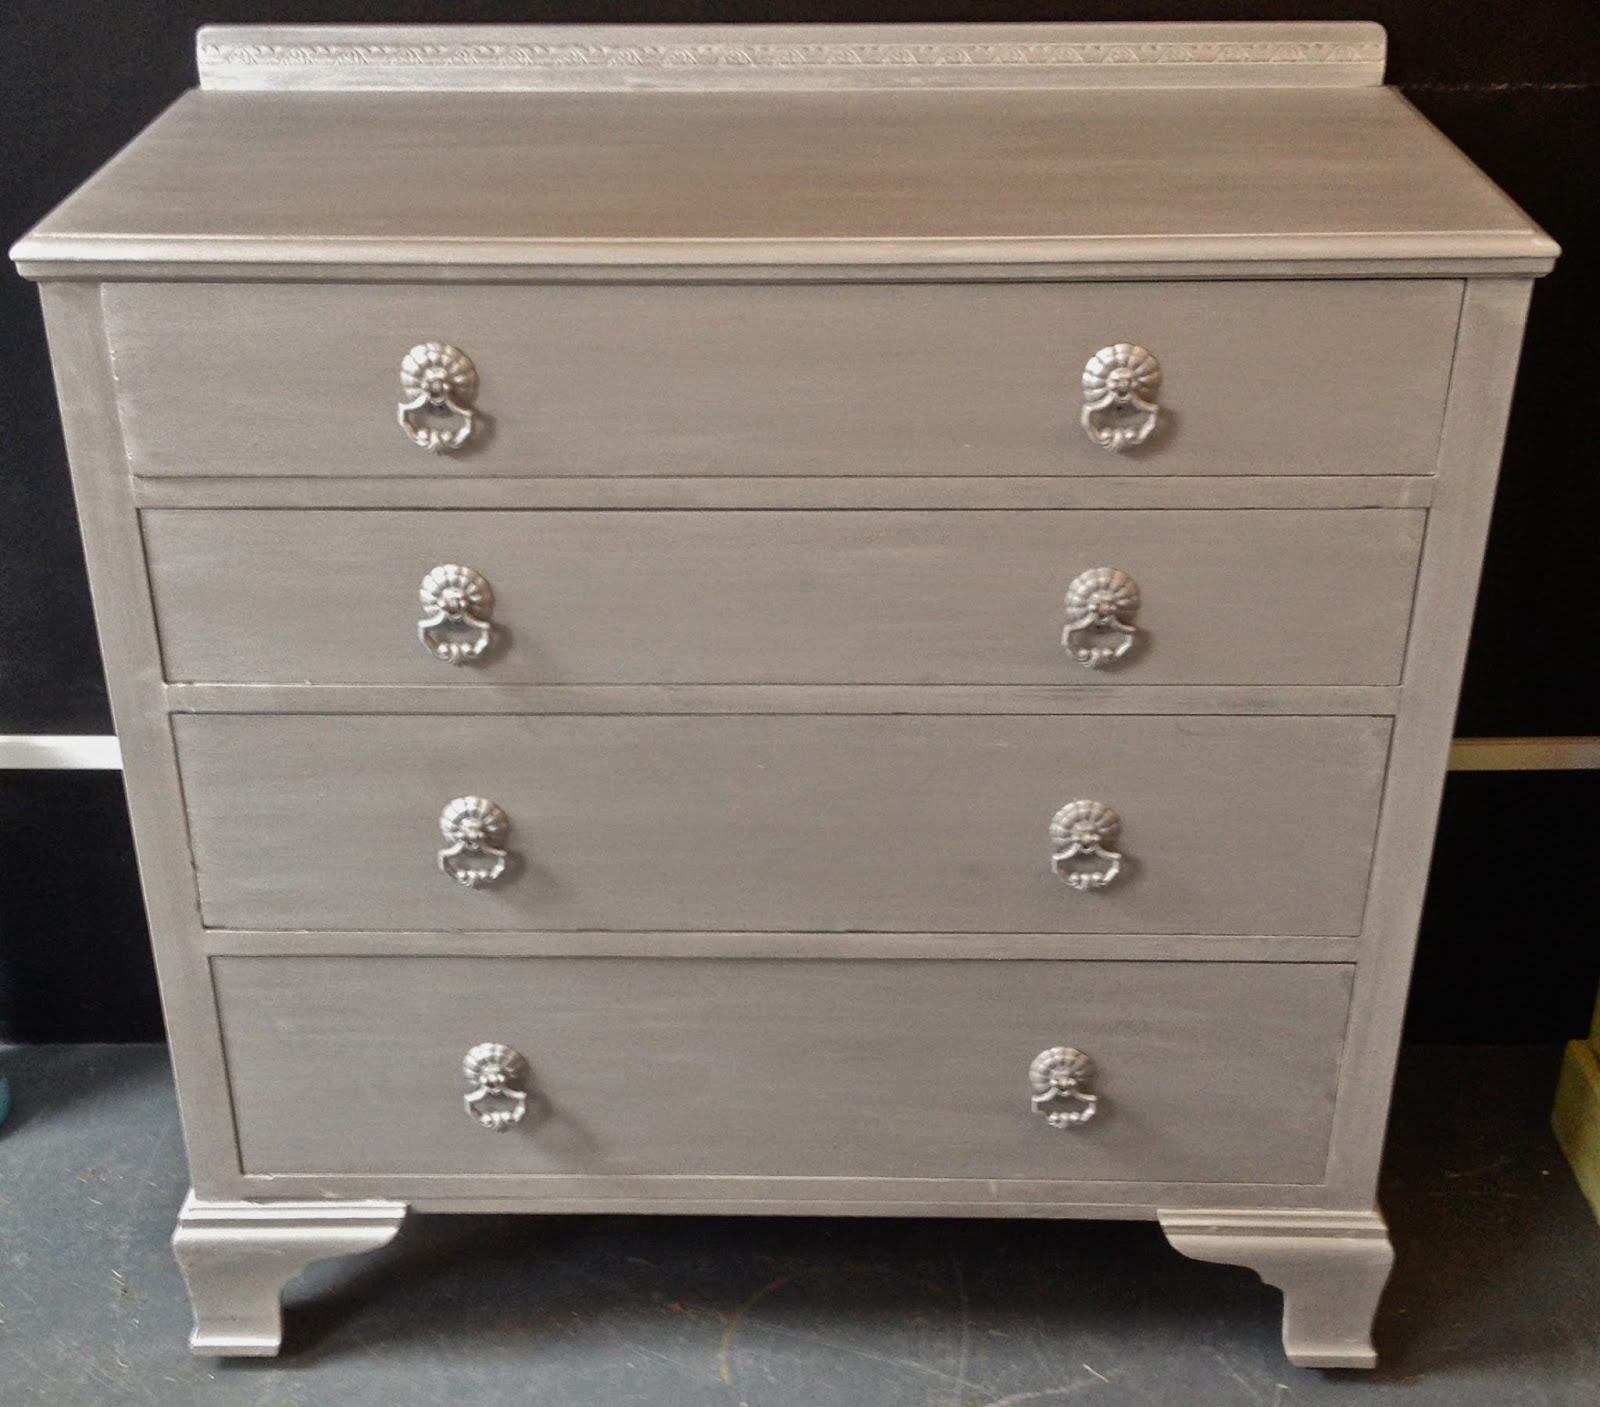 #796552 ChouChou Vintage: Cosmic Silver Vintage Tallboy Chest Of  with 1600x1407 px of Highly Rated Vintage Tallboy Chest Of Drawers 14071600 picture/photo @ avoidforclosure.info